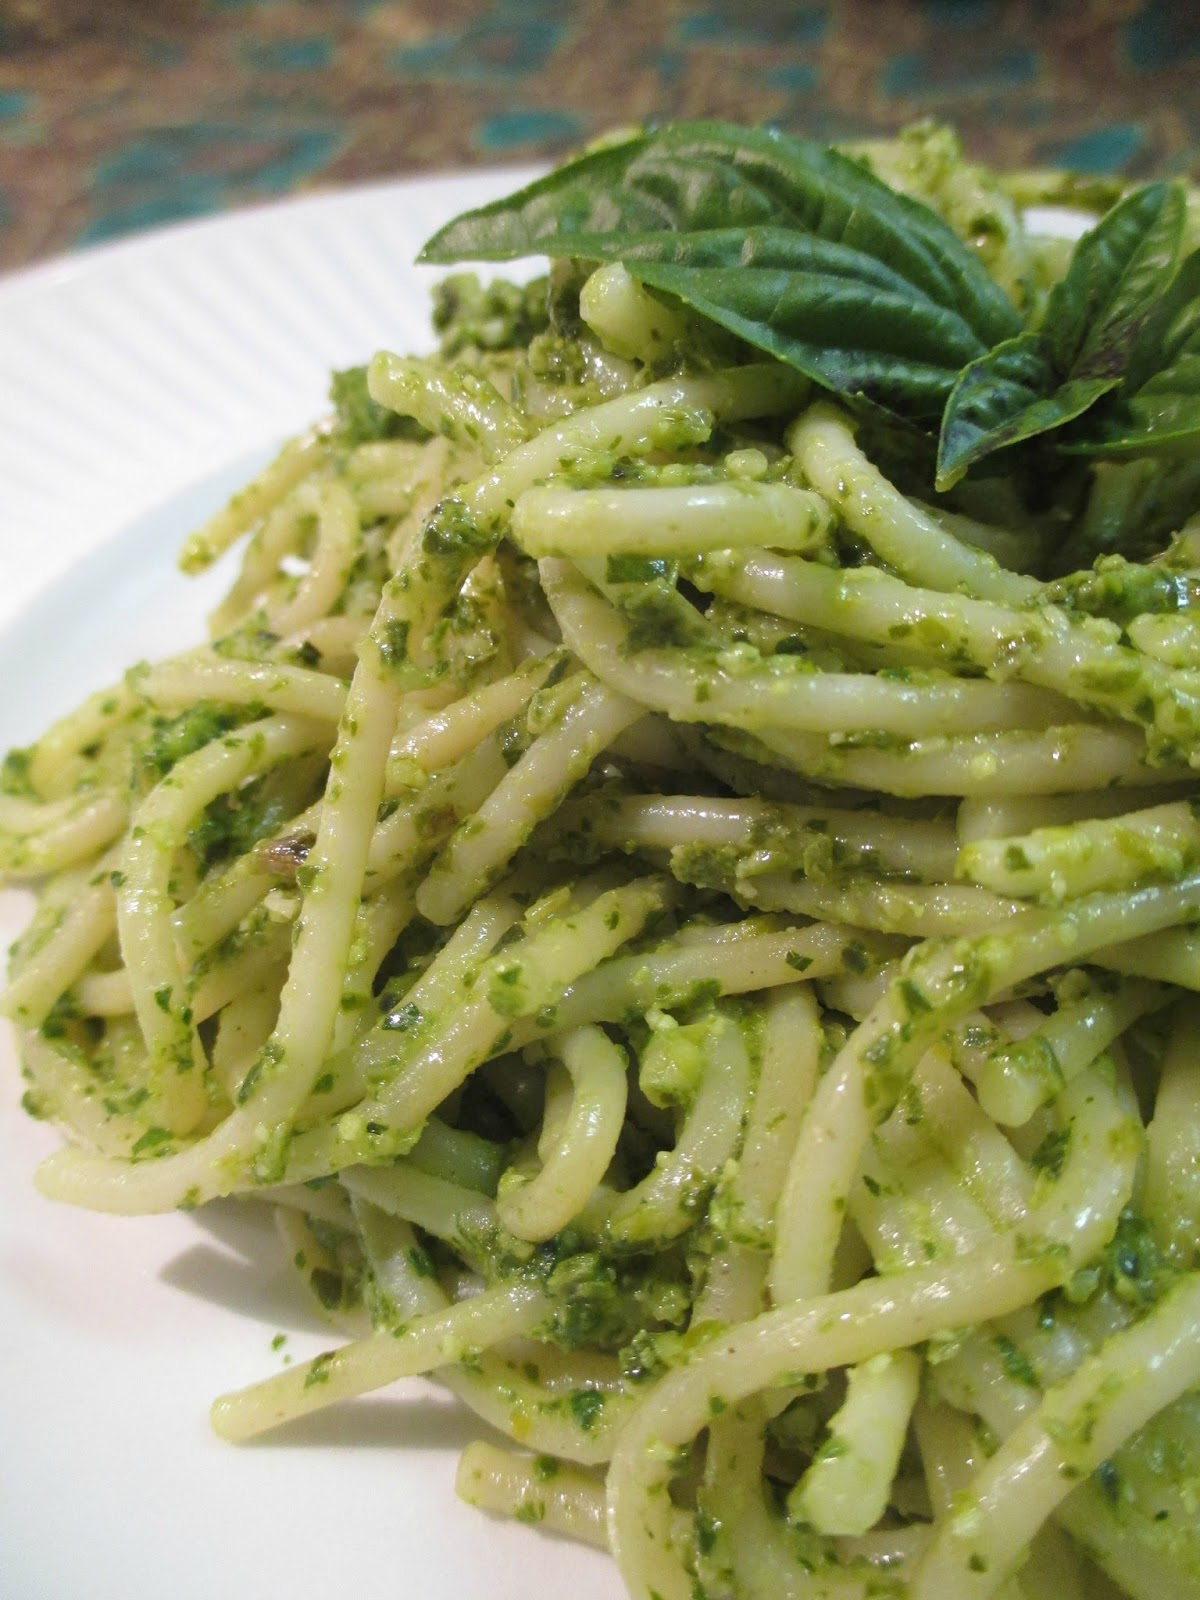 Just my Stuff: Kale Pesto